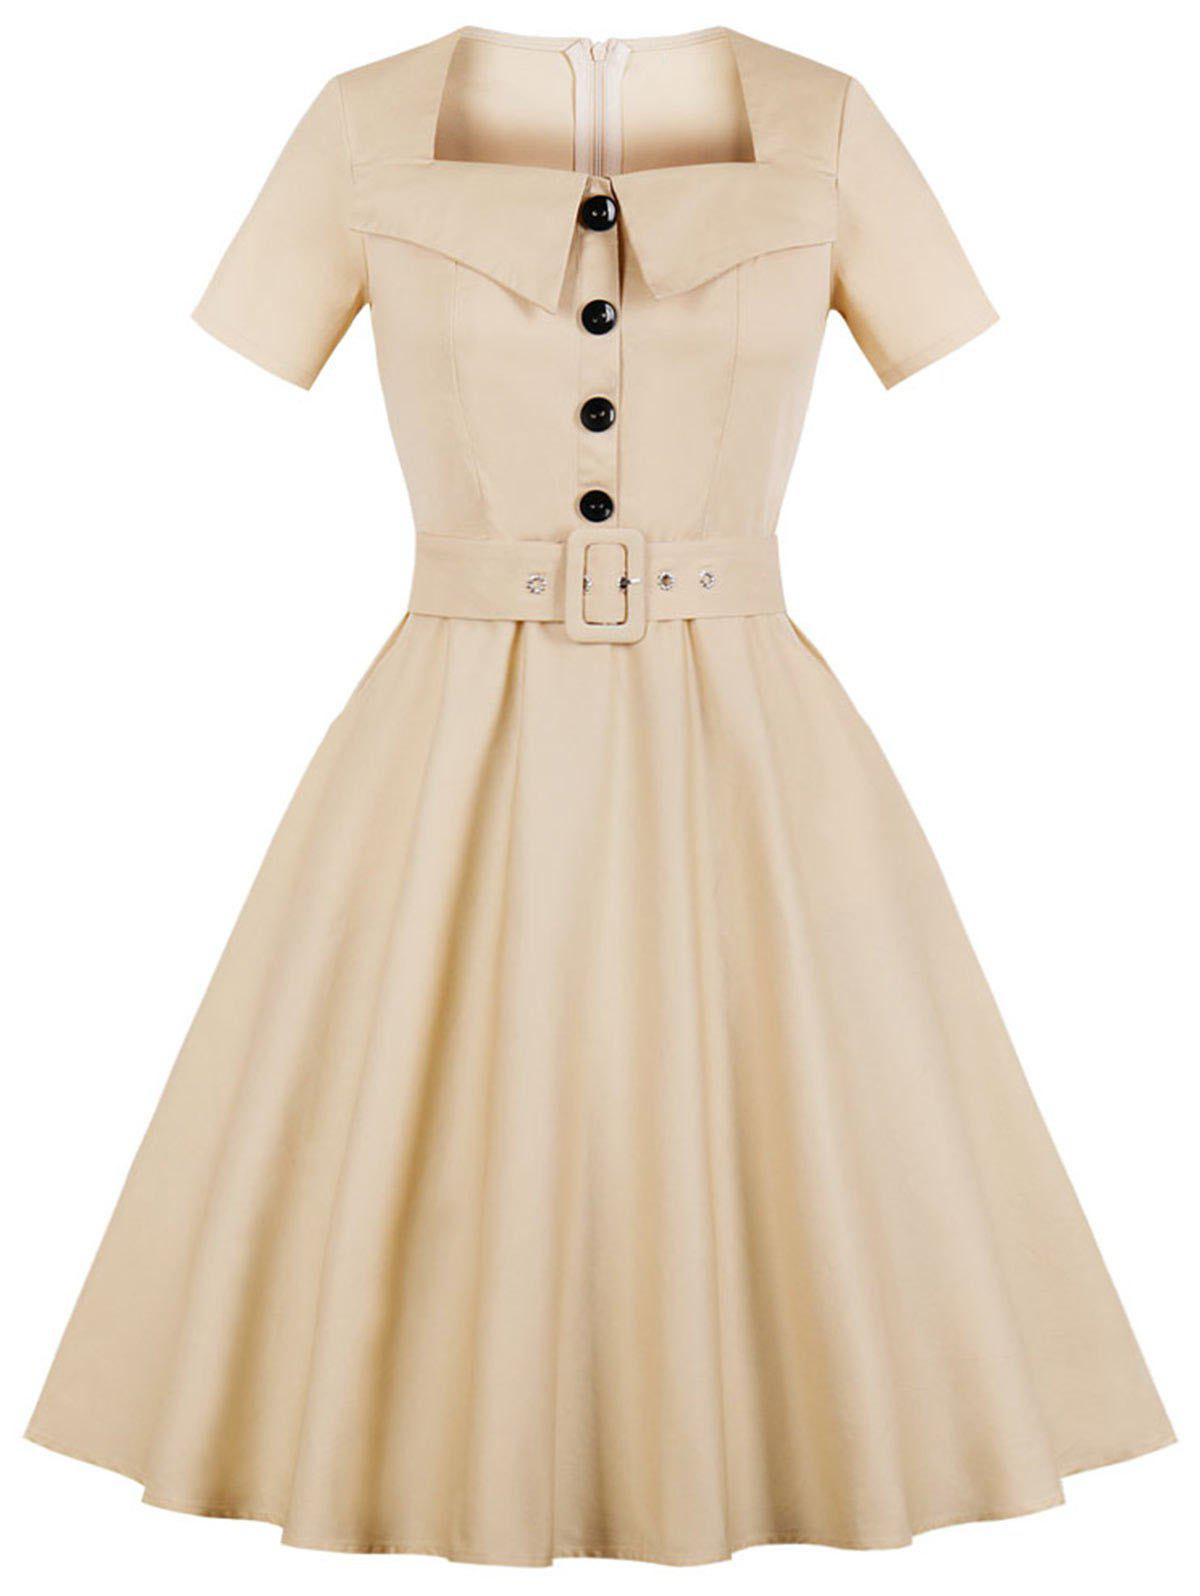 Plus Size Short Sleeve Square Neck Swing Dress - BLANCHED ALMOND 3X